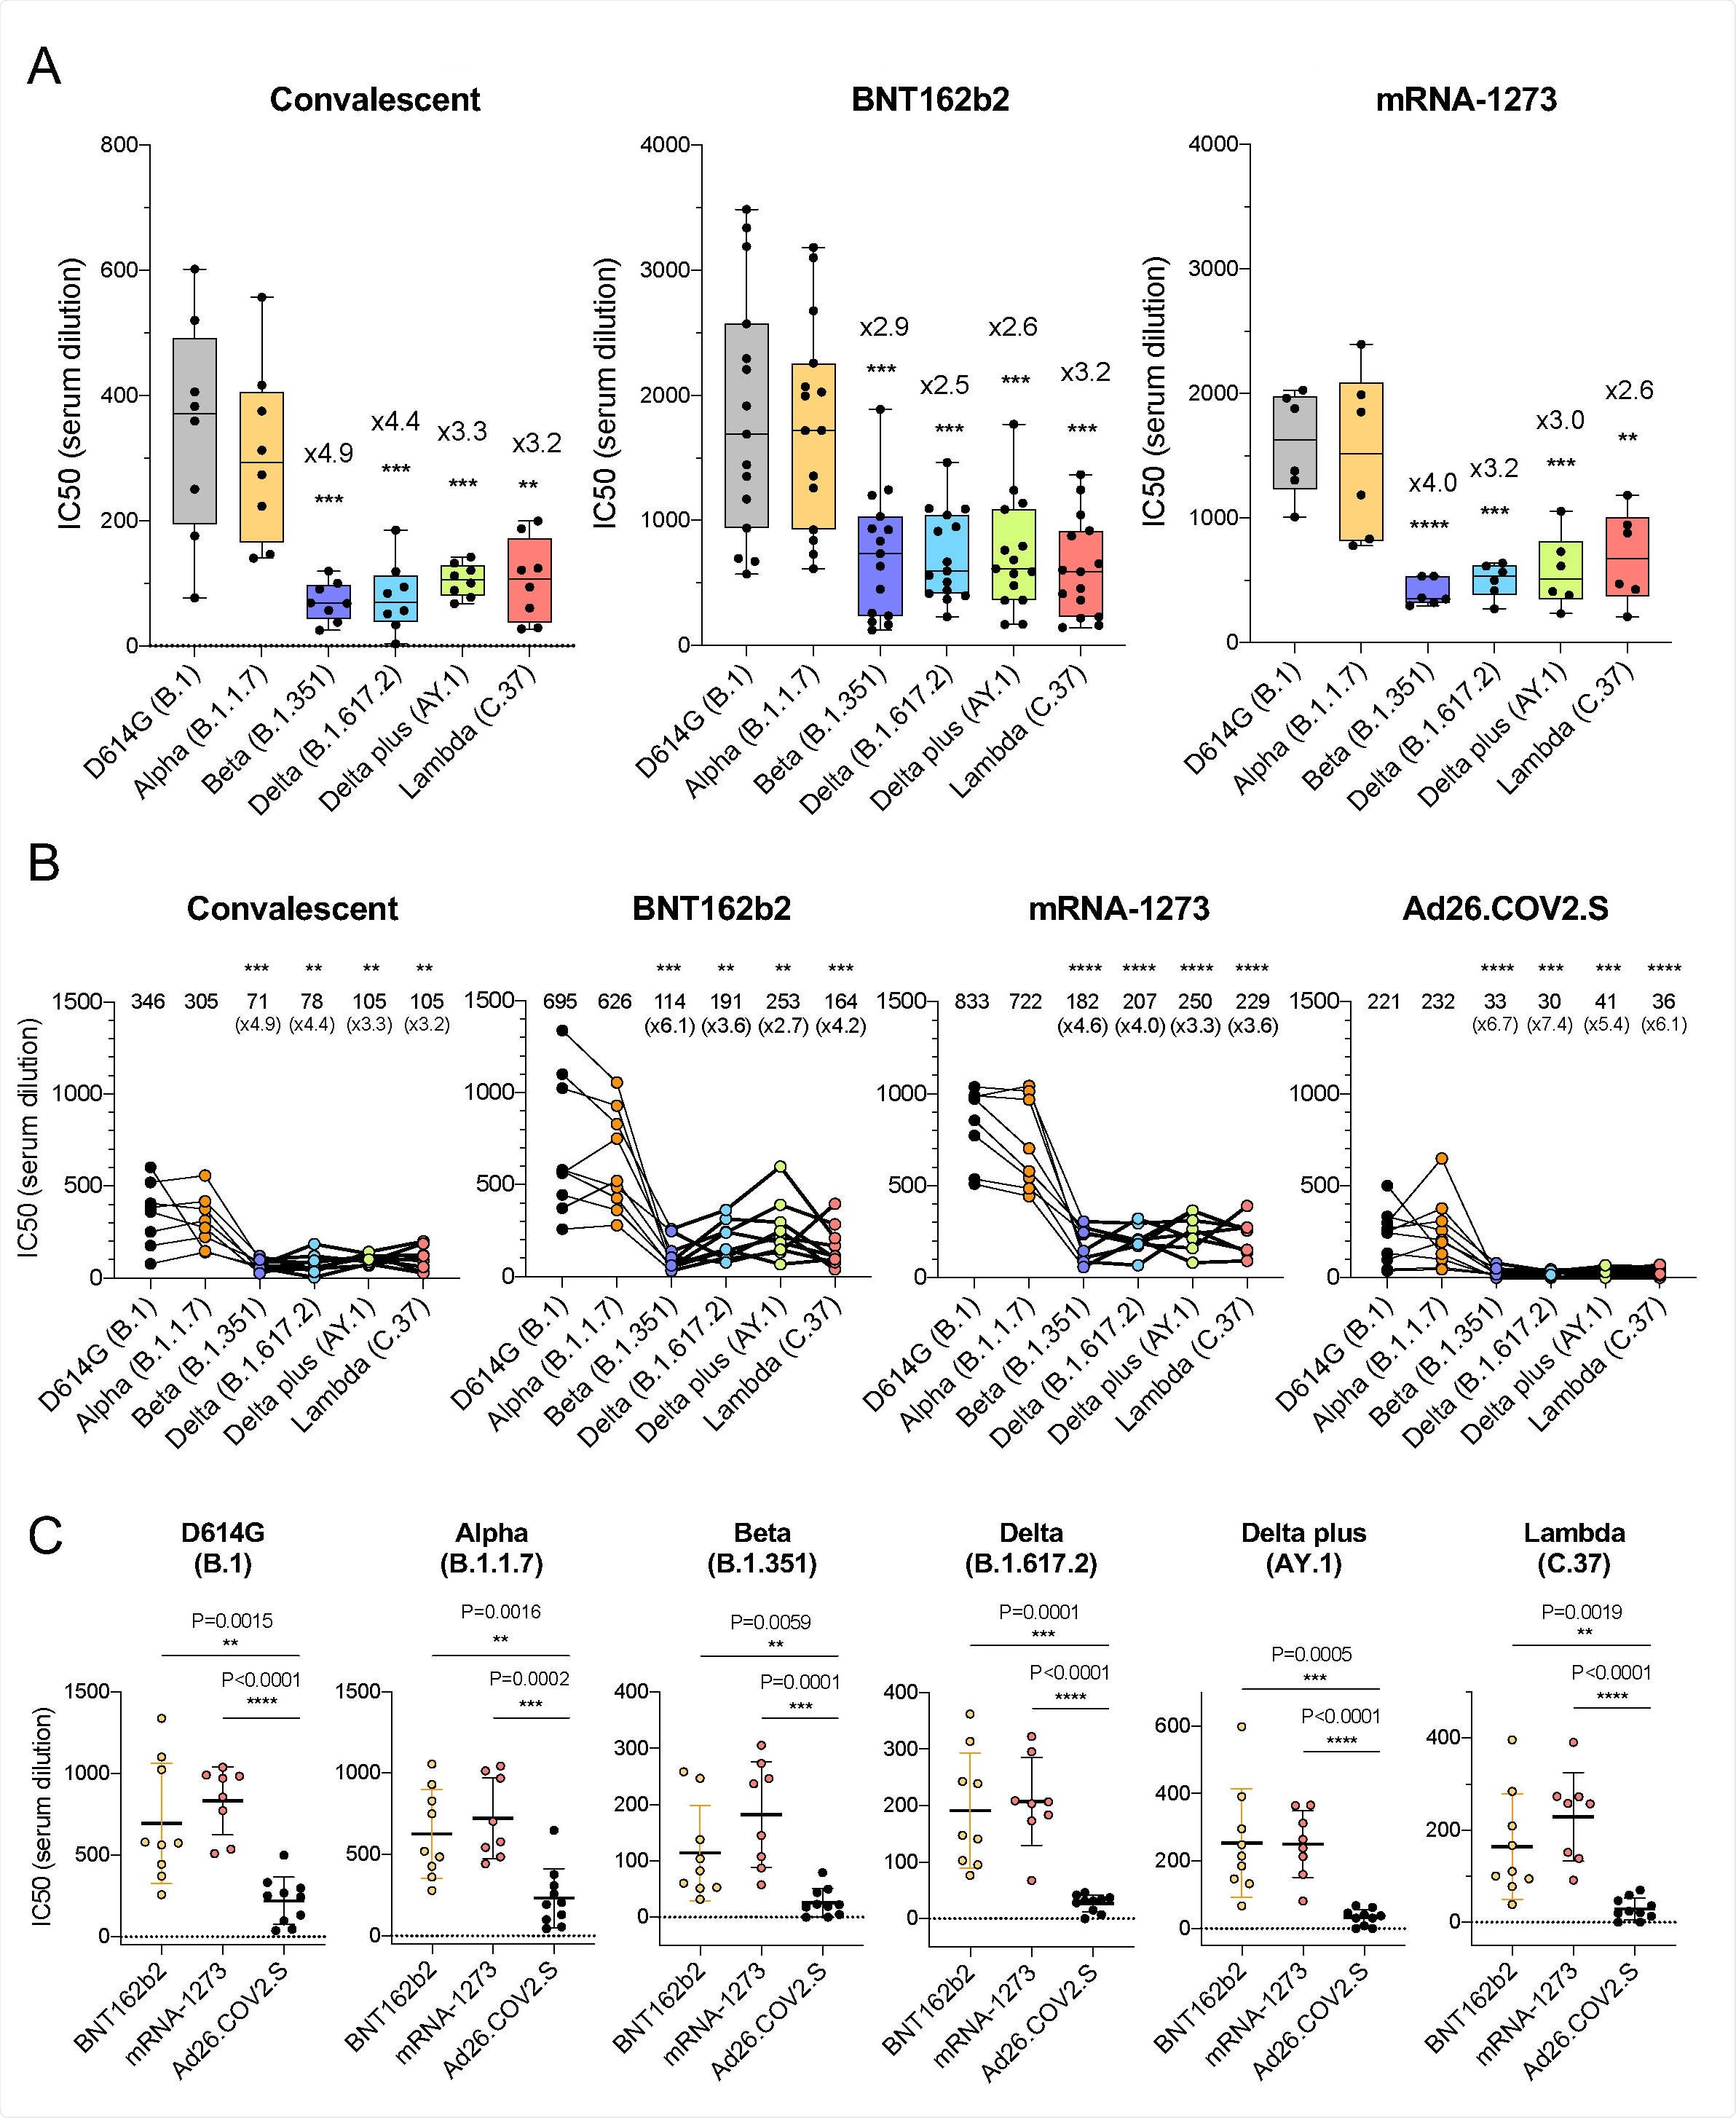 Comparison of neutralization titers of variant spike protein pseudotyped viruses by convalescent sera, antibodies elicited by BNT162b2, mRNA-1273, Ad26.COV2.S. (A) Neutralization of variant spike protein pseudotyped viruses by convalescent serum (n=8) (left). Neutralizing titers of serum samples from BNT162b2 vaccinated individuals (n=15) (middle). Neutralizing titers of serum samples from mRNA-1273 vaccinated donors (n=6) (right). The serum was collected at early time point (7 days after second immunization). The neutralization IC50 from individual donors is shown. Significance is based on two-sided t-test. (B) Comparison of neutralization of variants by convalescent serum (n=8, the same donors in A), BNT162b2 vaccinated individuals (n=9), mRNA-1273 vaccinated donors (n=8), Ad26.COV2.S vaccinated donors (n=10), sera from vaccinated individuals were collected at later time points. Each line shows individual donors. (C) Comparison of neutralization potency of each vaccine by different SARS-CoV-2 variants. The neutralization IC50 from individual donors vaccinated by BNT162b2 (yellow), mRNA-1273 (pink), Ad26.COV2.S (black) is shown. Significance is based on two-sided t-test.